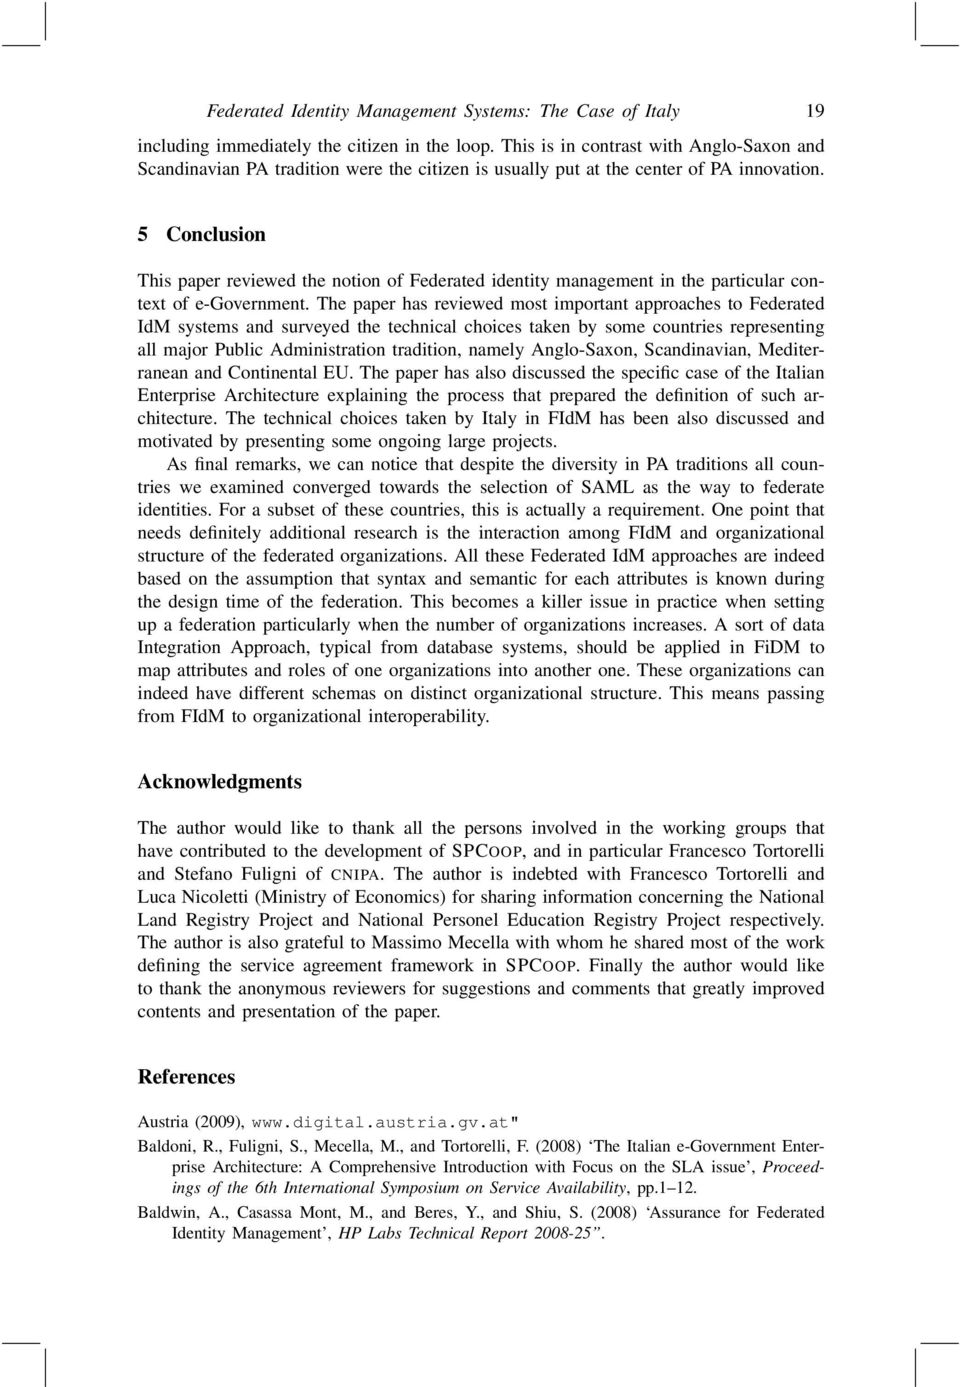 5 Conclusion This paper reviewed the notion of Federated identity management in the particular context of e-government.